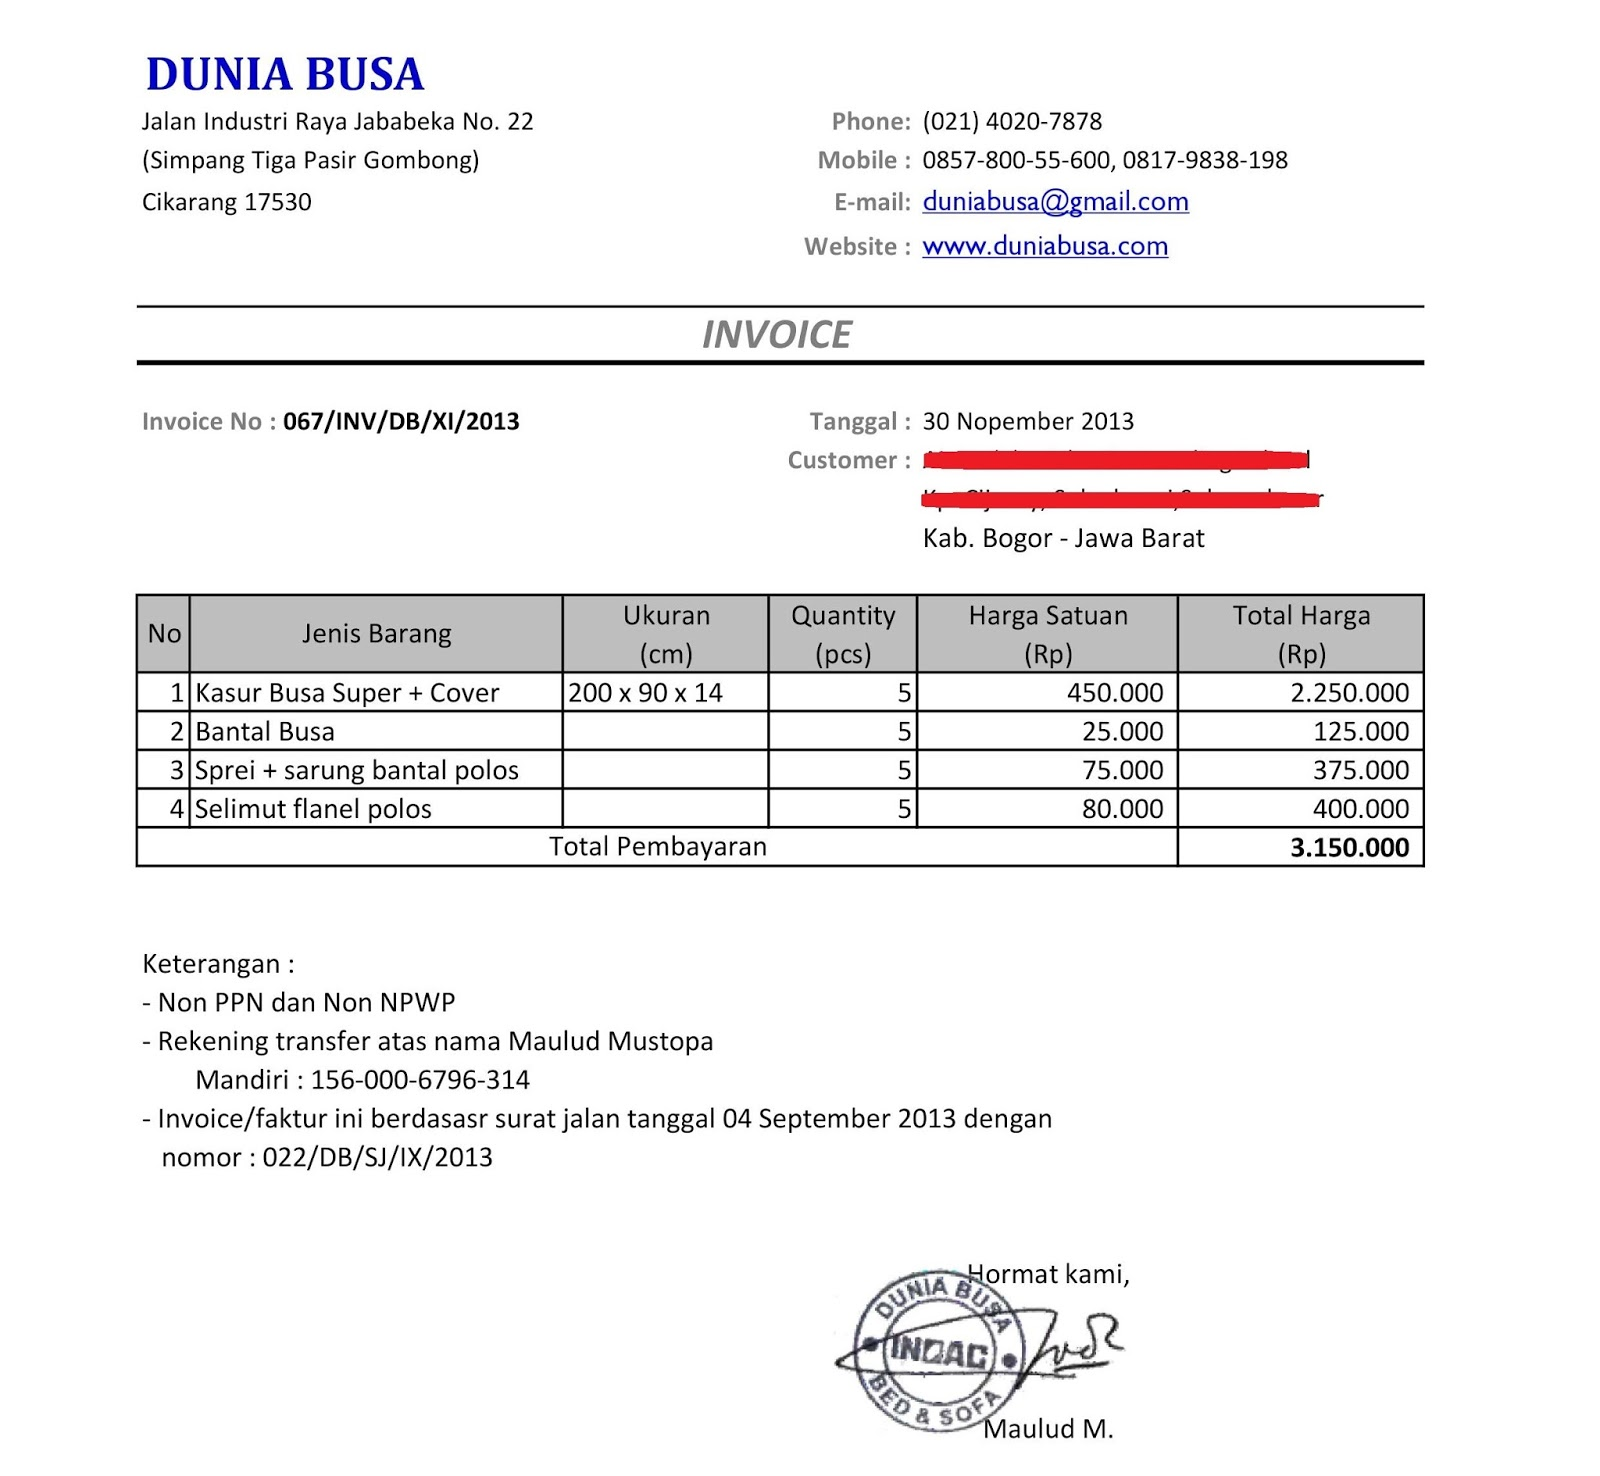 Coachoutletonlineplusus  Splendid Free Invoice Online  Create Invoice Online  Invoice Template  With Goodlooking Contoh Format Invoice Atau Surat Tagihan  Brankas Arsip  Free Invoice Online With Comely Black Invoice Template Also Standard Invoice Form In Addition Requirements Of A Vat Invoice And Difference Between Invoice And Msrp As Well As Free Contractor Invoice Template Additionally Unpaid Invoice From Sklepco With Coachoutletonlineplusus  Goodlooking Free Invoice Online  Create Invoice Online  Invoice Template  With Comely Contoh Format Invoice Atau Surat Tagihan  Brankas Arsip  Free Invoice Online And Splendid Black Invoice Template Also Standard Invoice Form In Addition Requirements Of A Vat Invoice From Sklepco